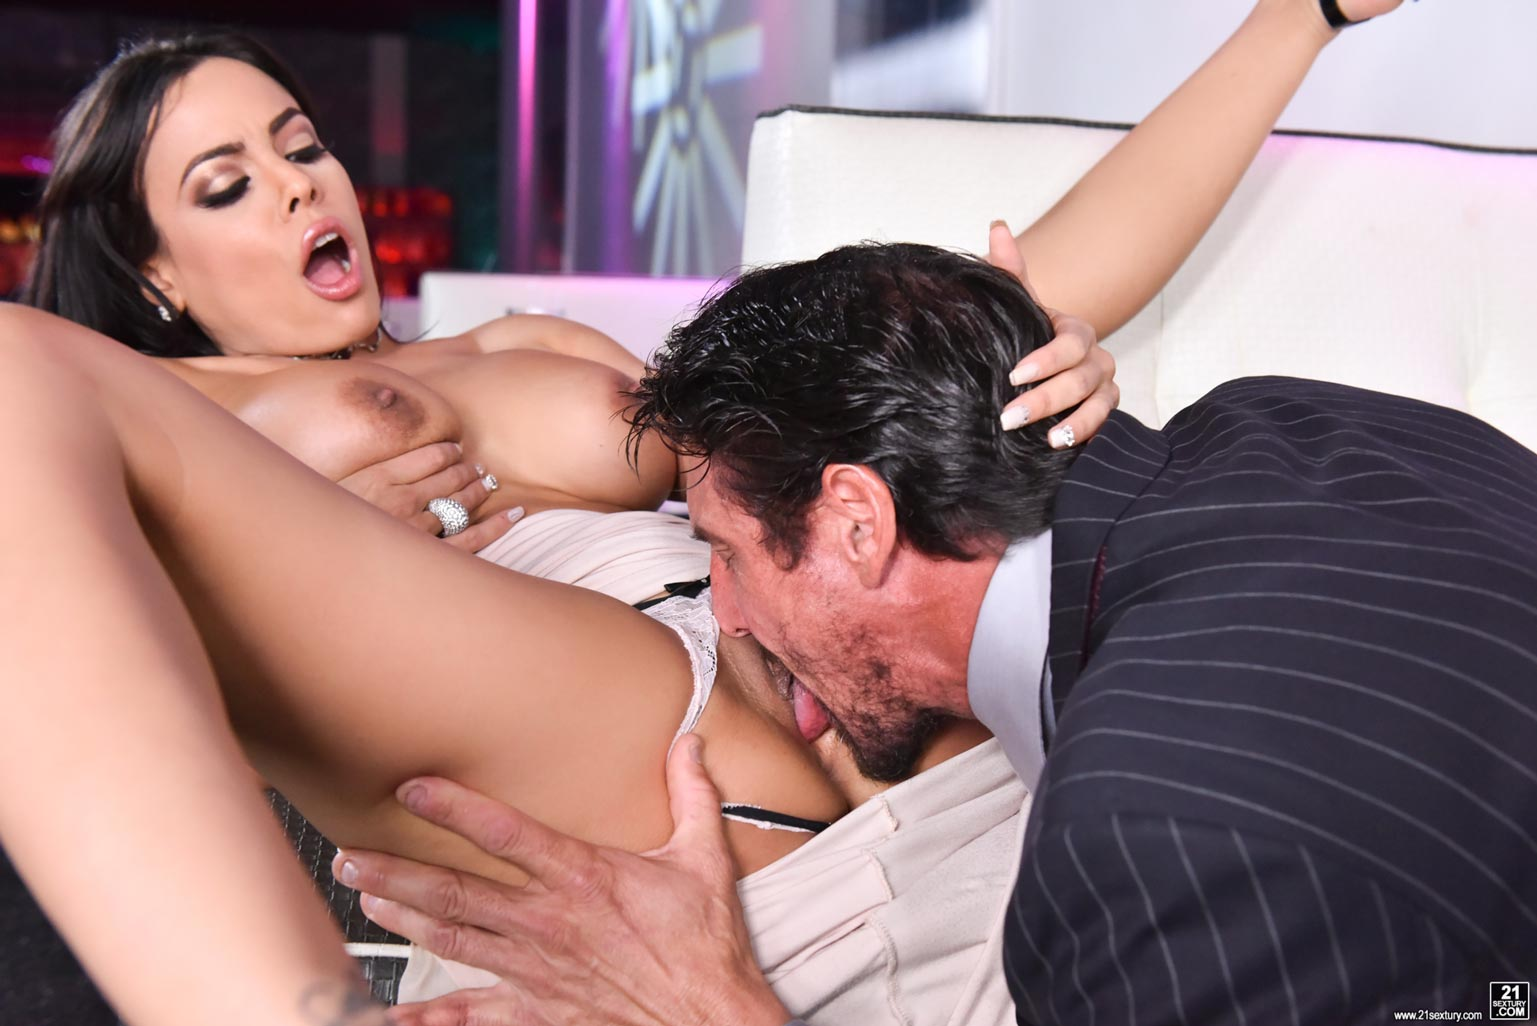 Licking Cock Pussy Same Time